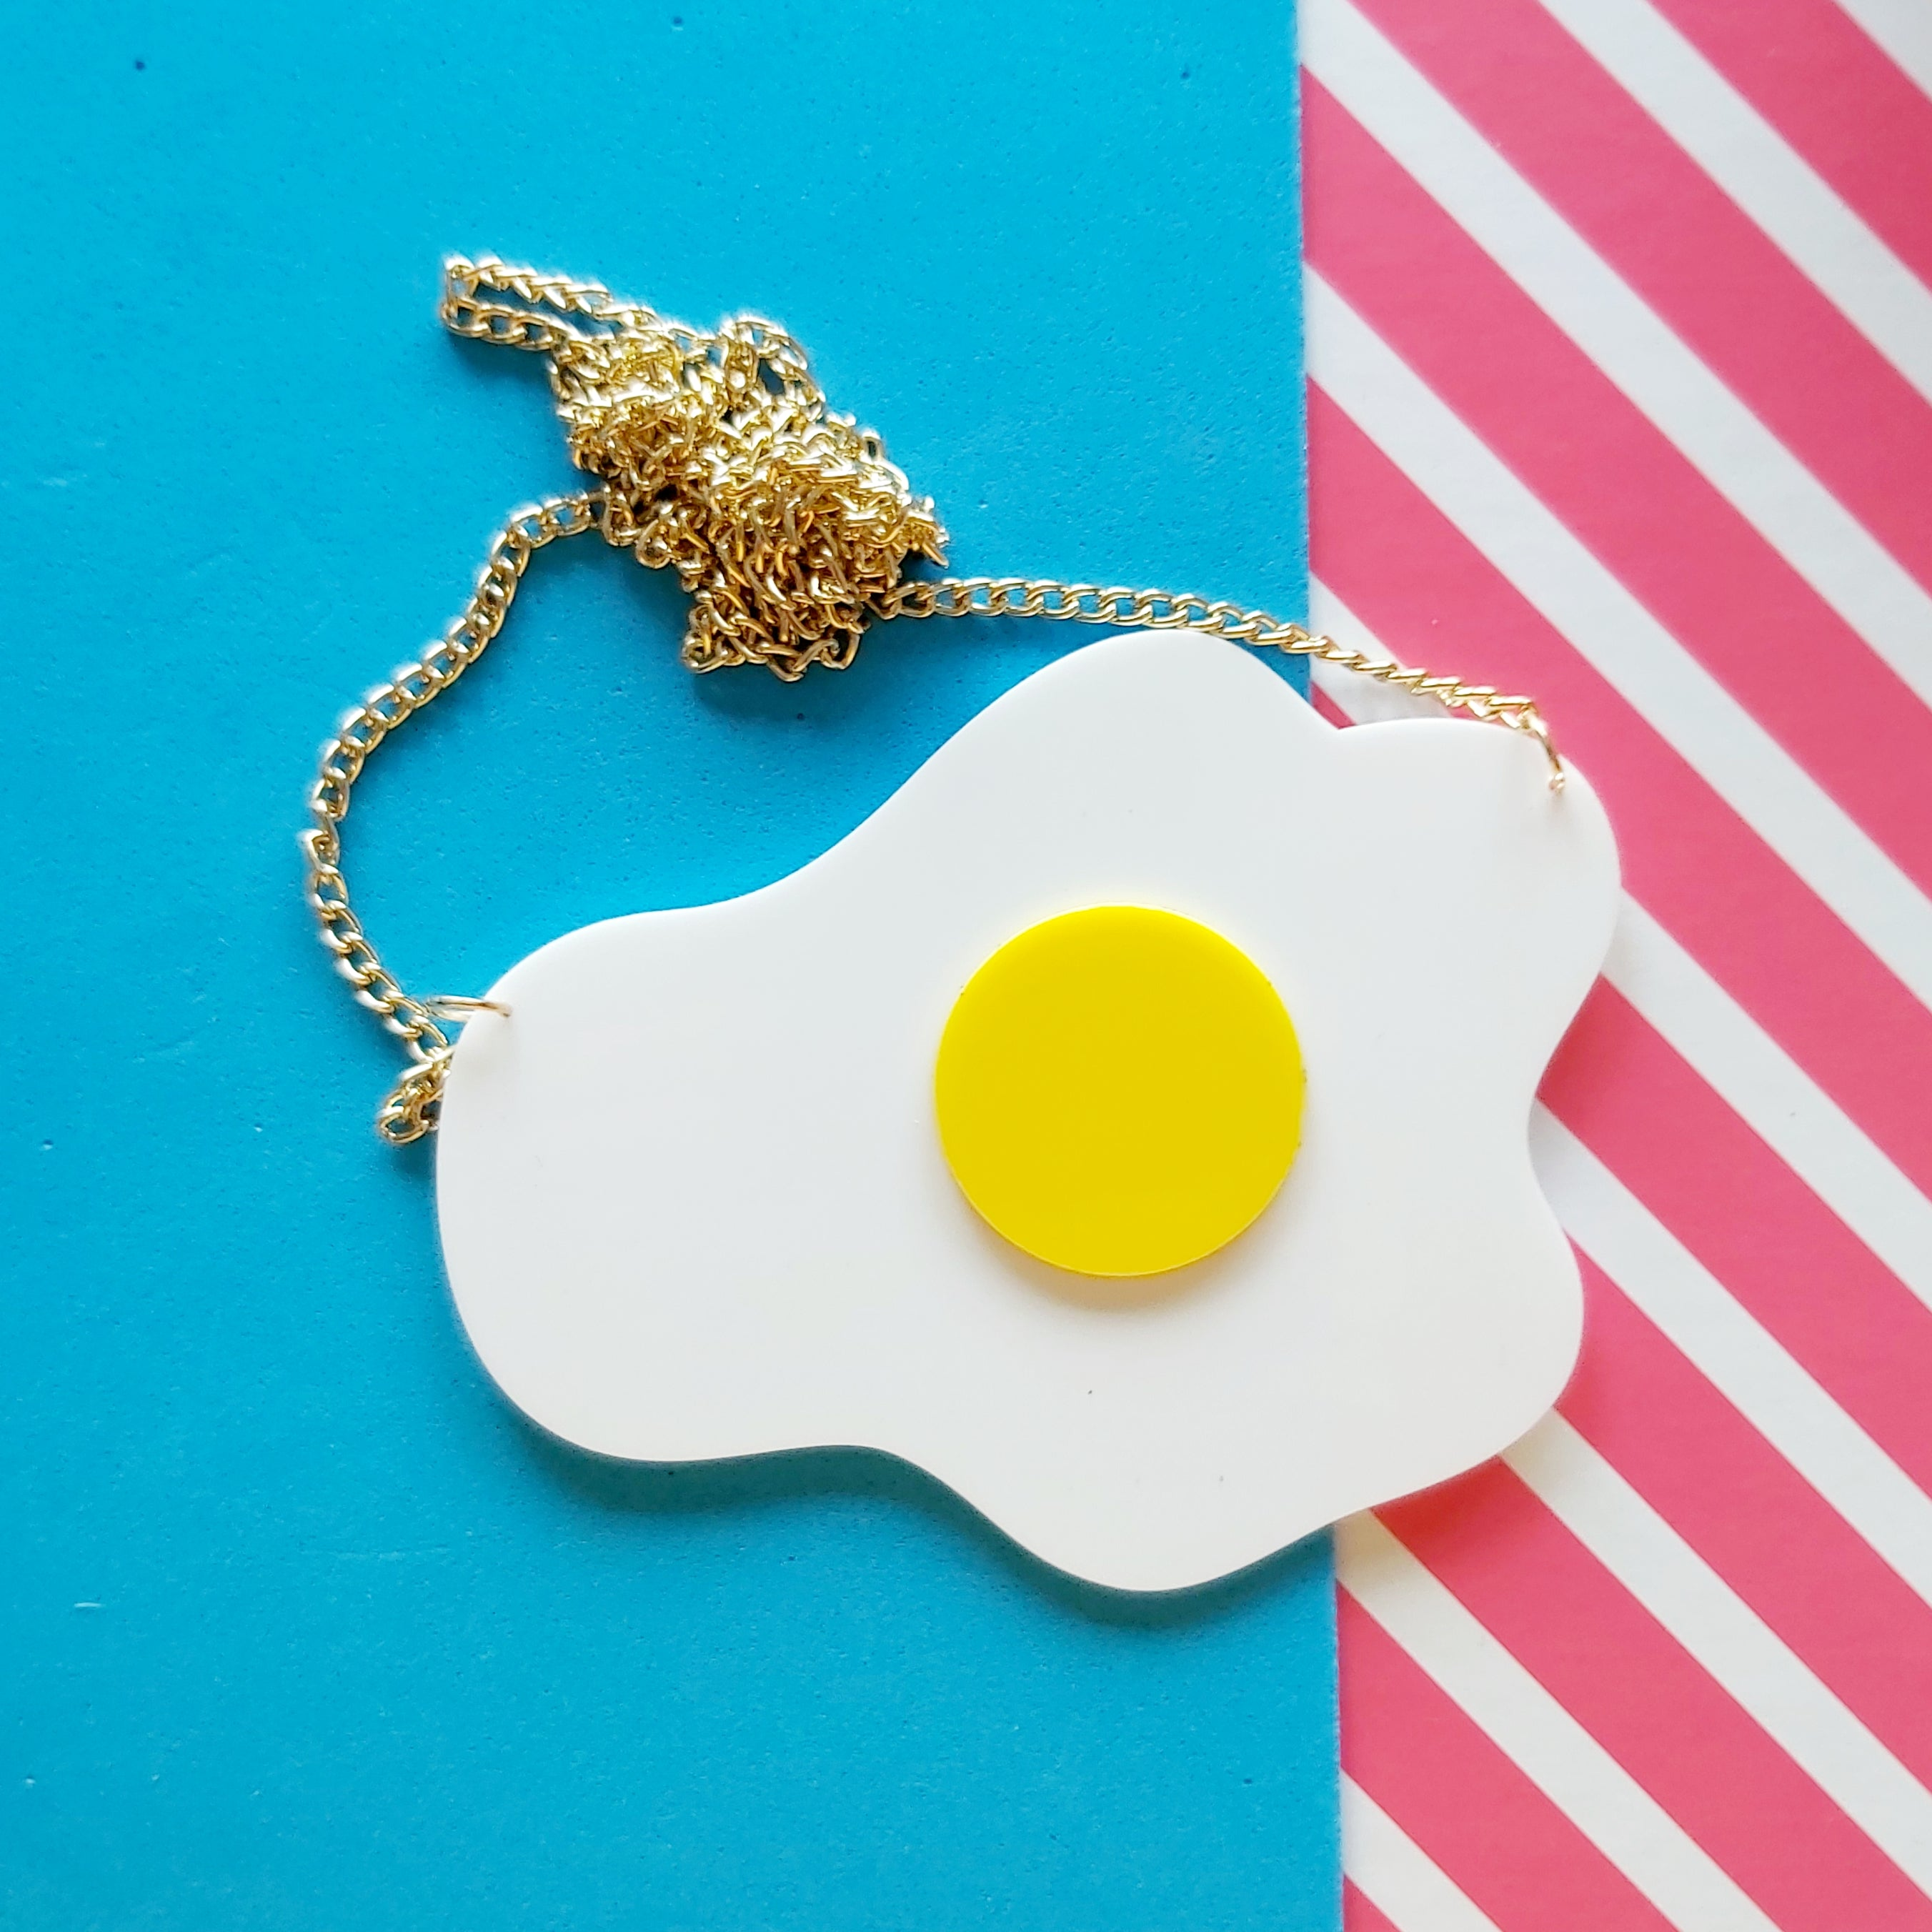 Eggsellent Necklace